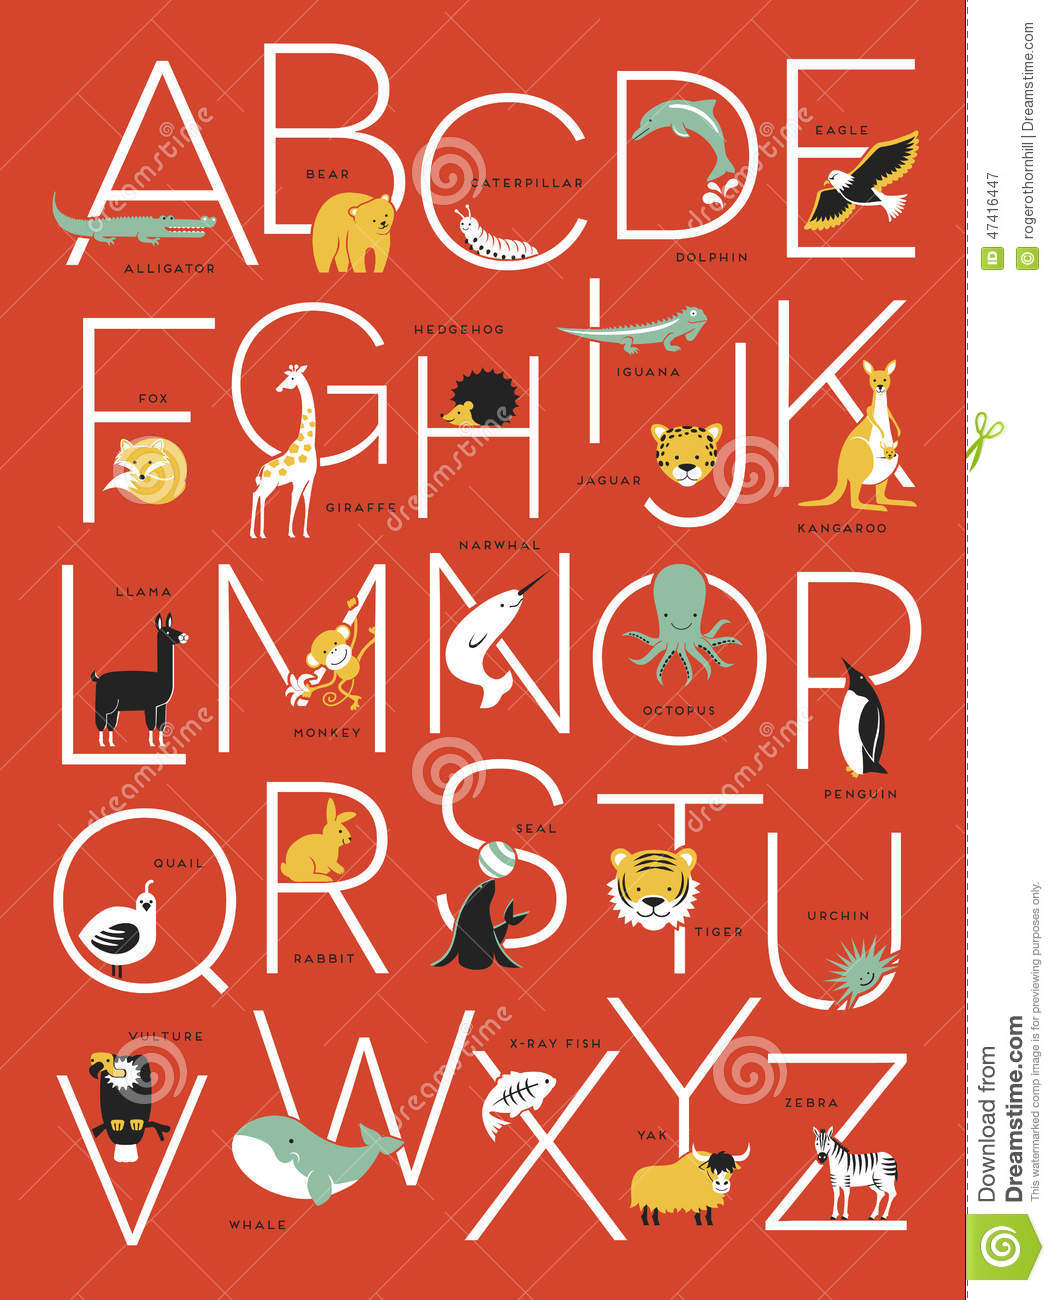 Poster design download - Alphabet Animal Animals Design Graphic Illustrations Poster